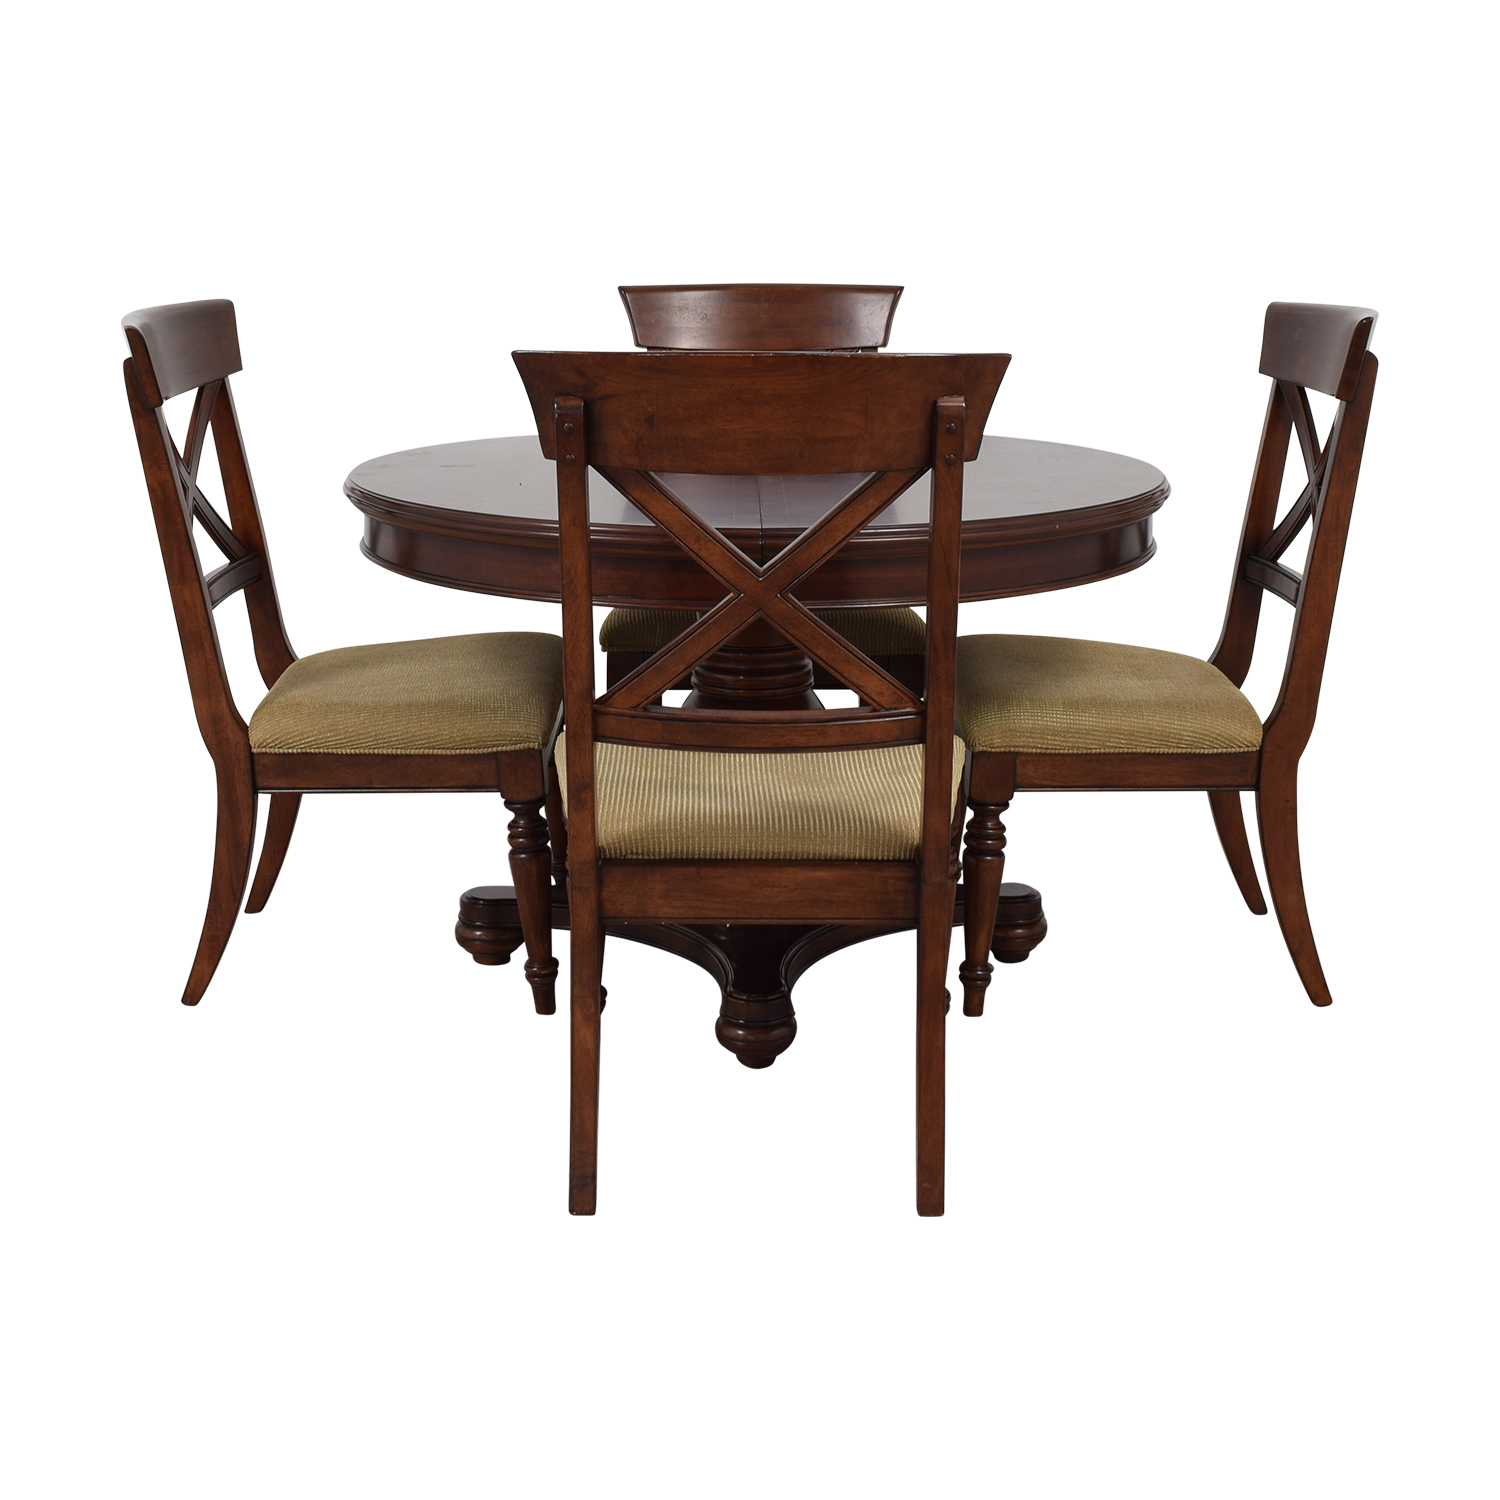 Macy's Macy's Pedestal Round Expandable Dining Set used